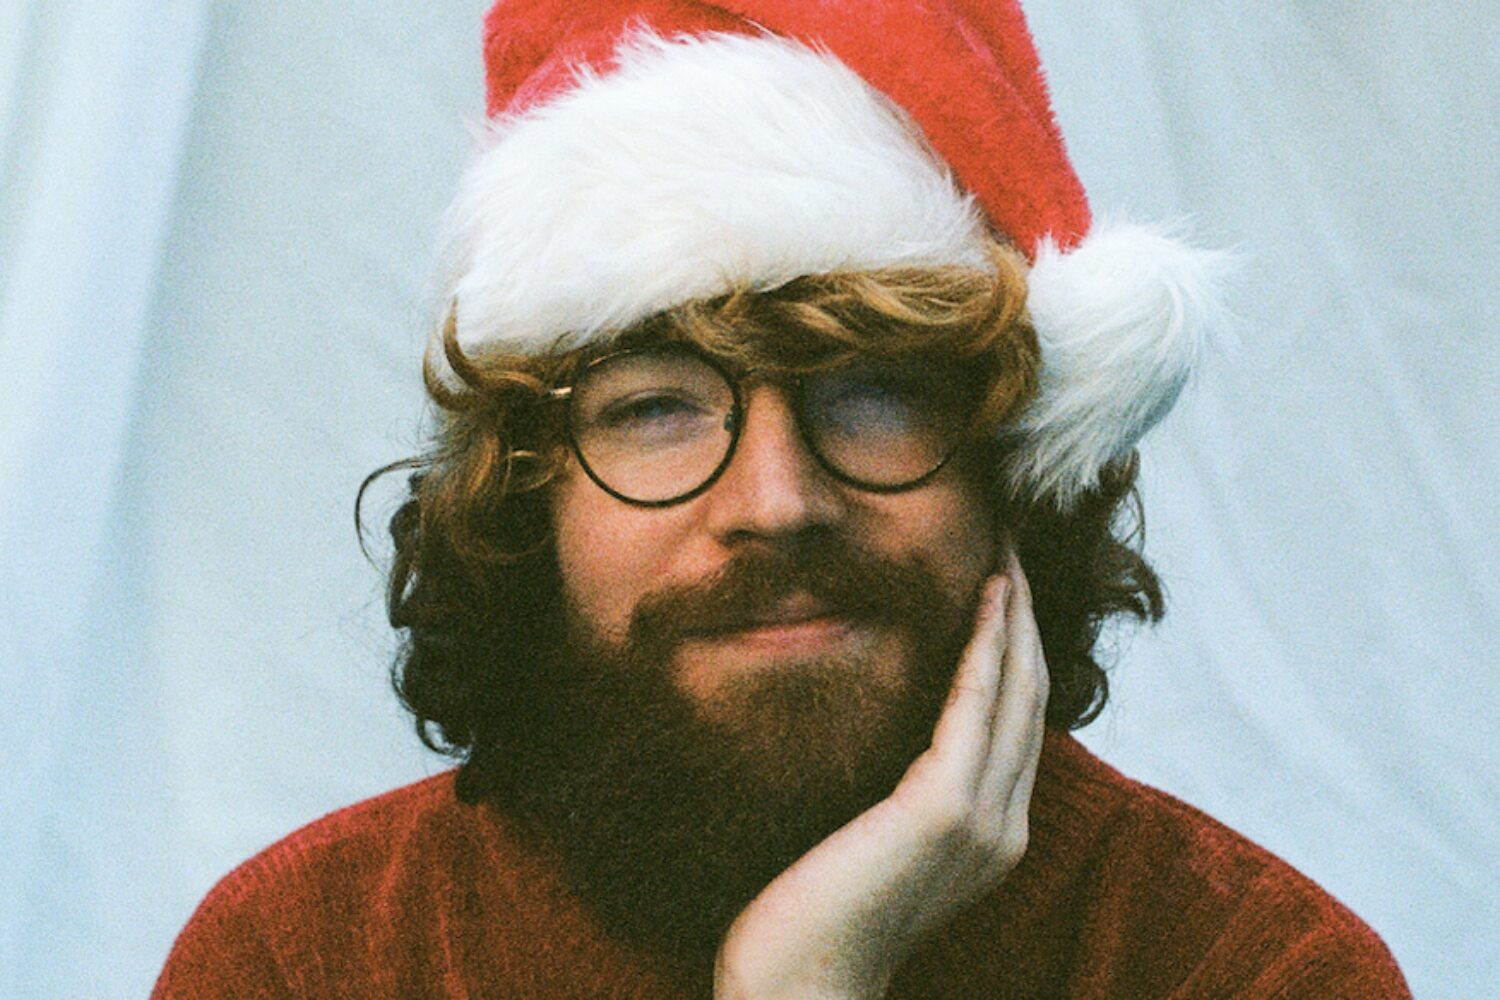 JW Francis releases 'JW Christmas' EP